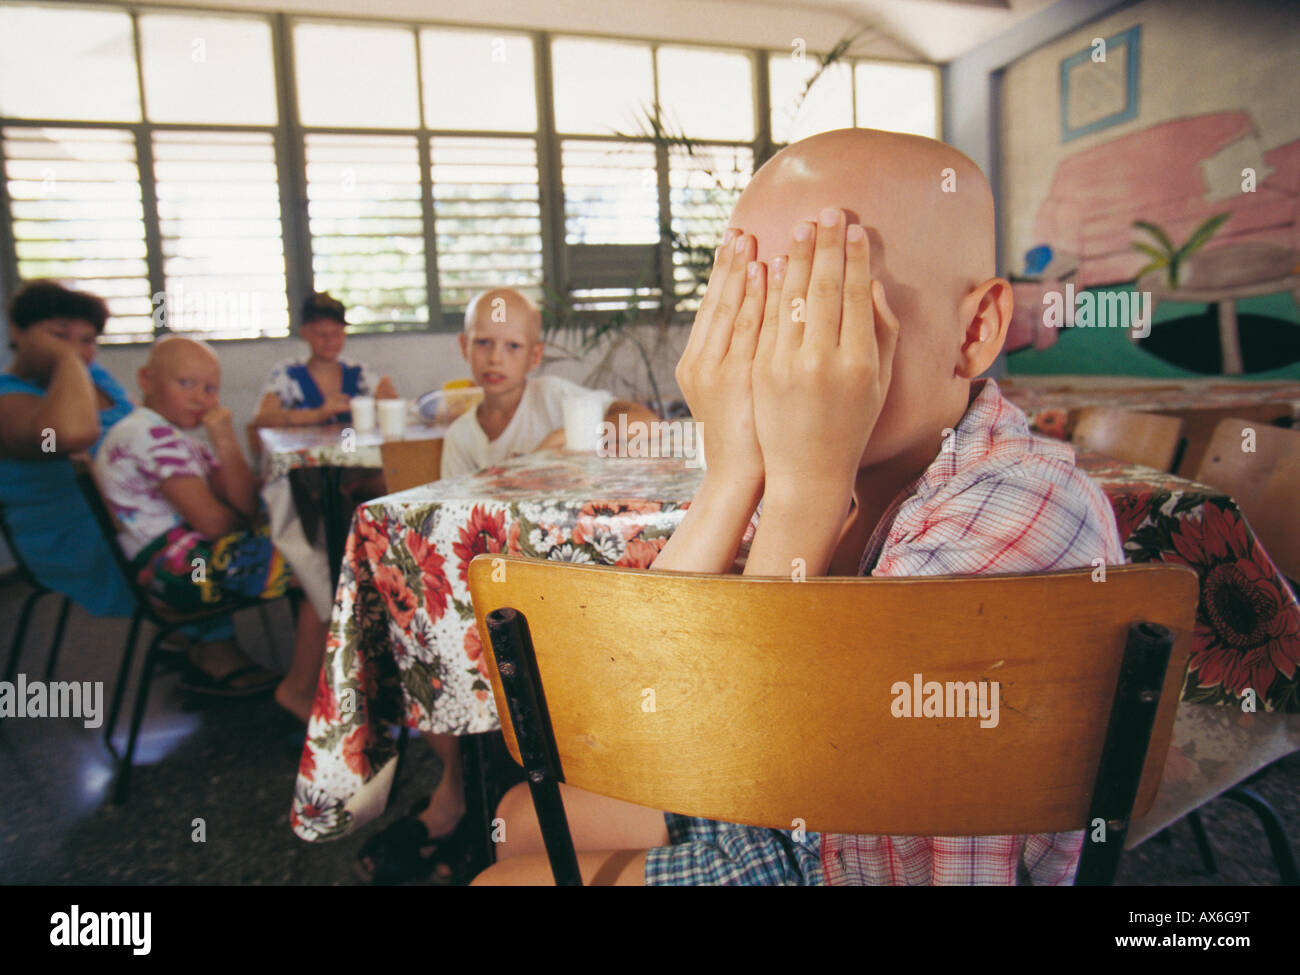 Victim of Chernobyl disaster boy covering his face in skin cancer hospital, Tarara, Havana, Cuba - Stock Image